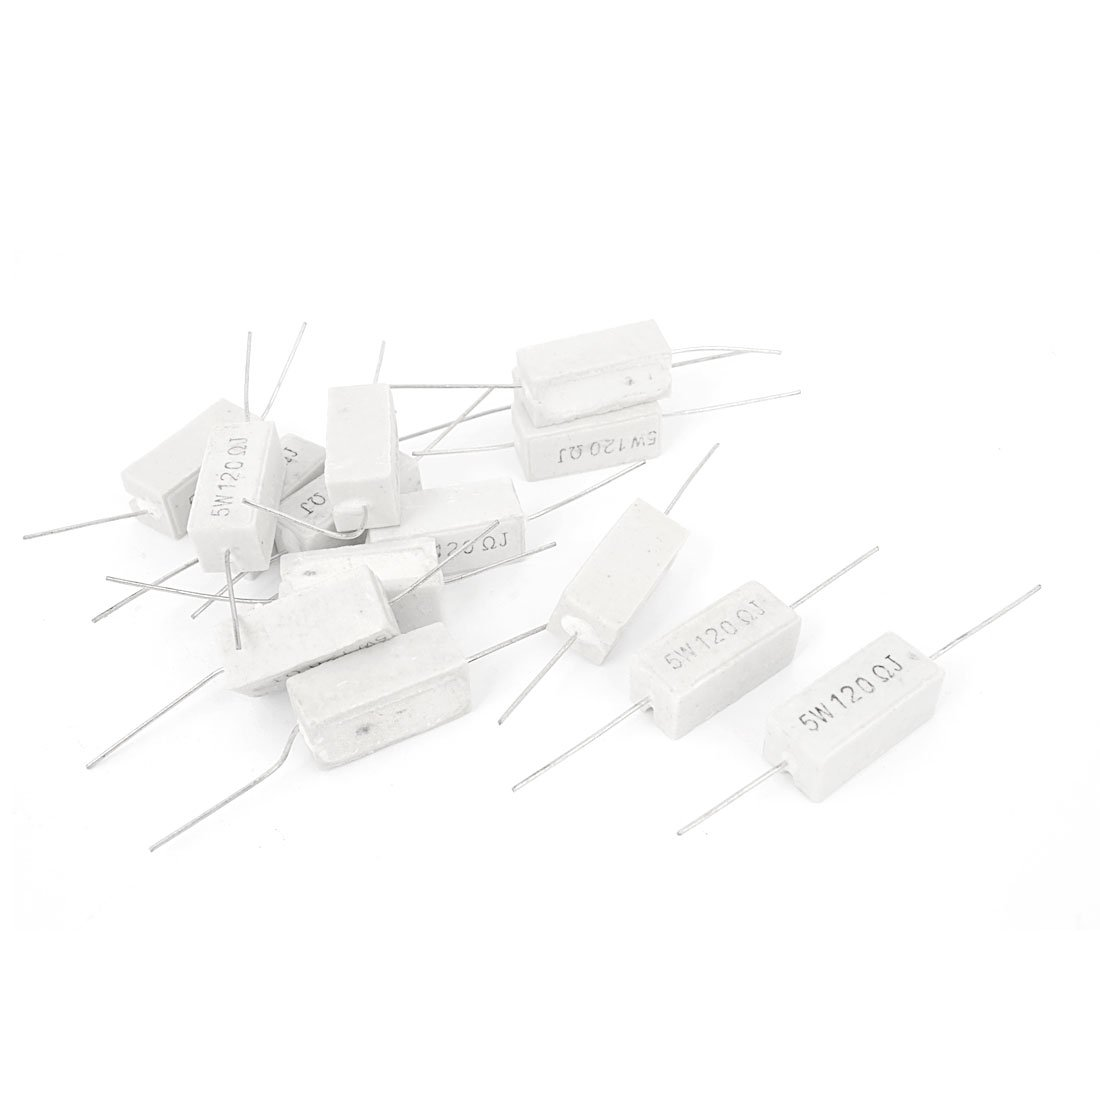 Axial Lead 2W 1/% Tolerance Metal Film Resistors sourcing map 30Pcs 0.47 Ohm Resistor 5 Bands for DIY Electronic Projects and Experiments